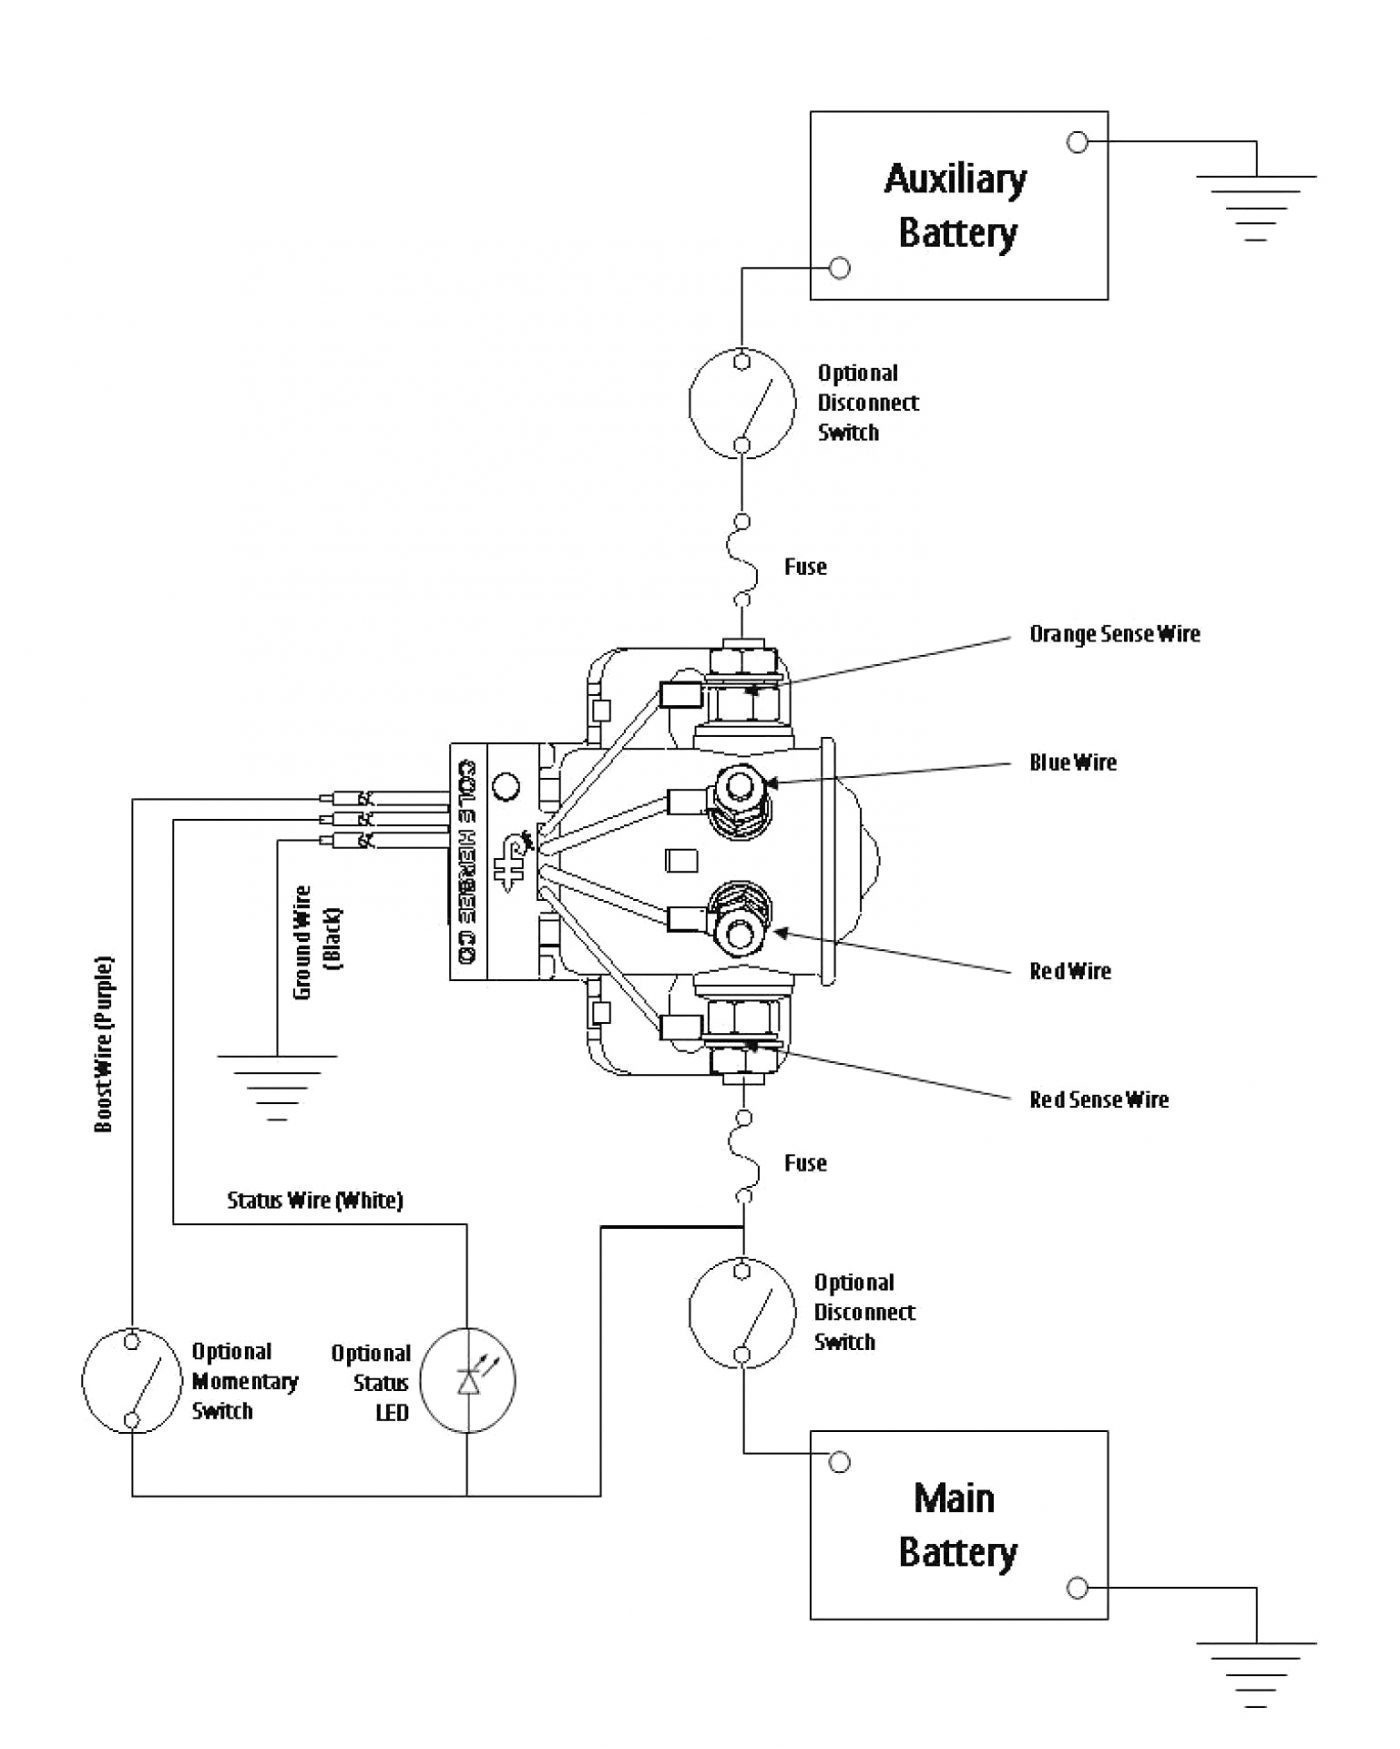 Vdo Oil Pressure Gauge Wiring Schematic Fe 1079] 11 Gauge Wire Diagram Free Diagram Of Vdo Oil Pressure Gauge Wiring Schematic